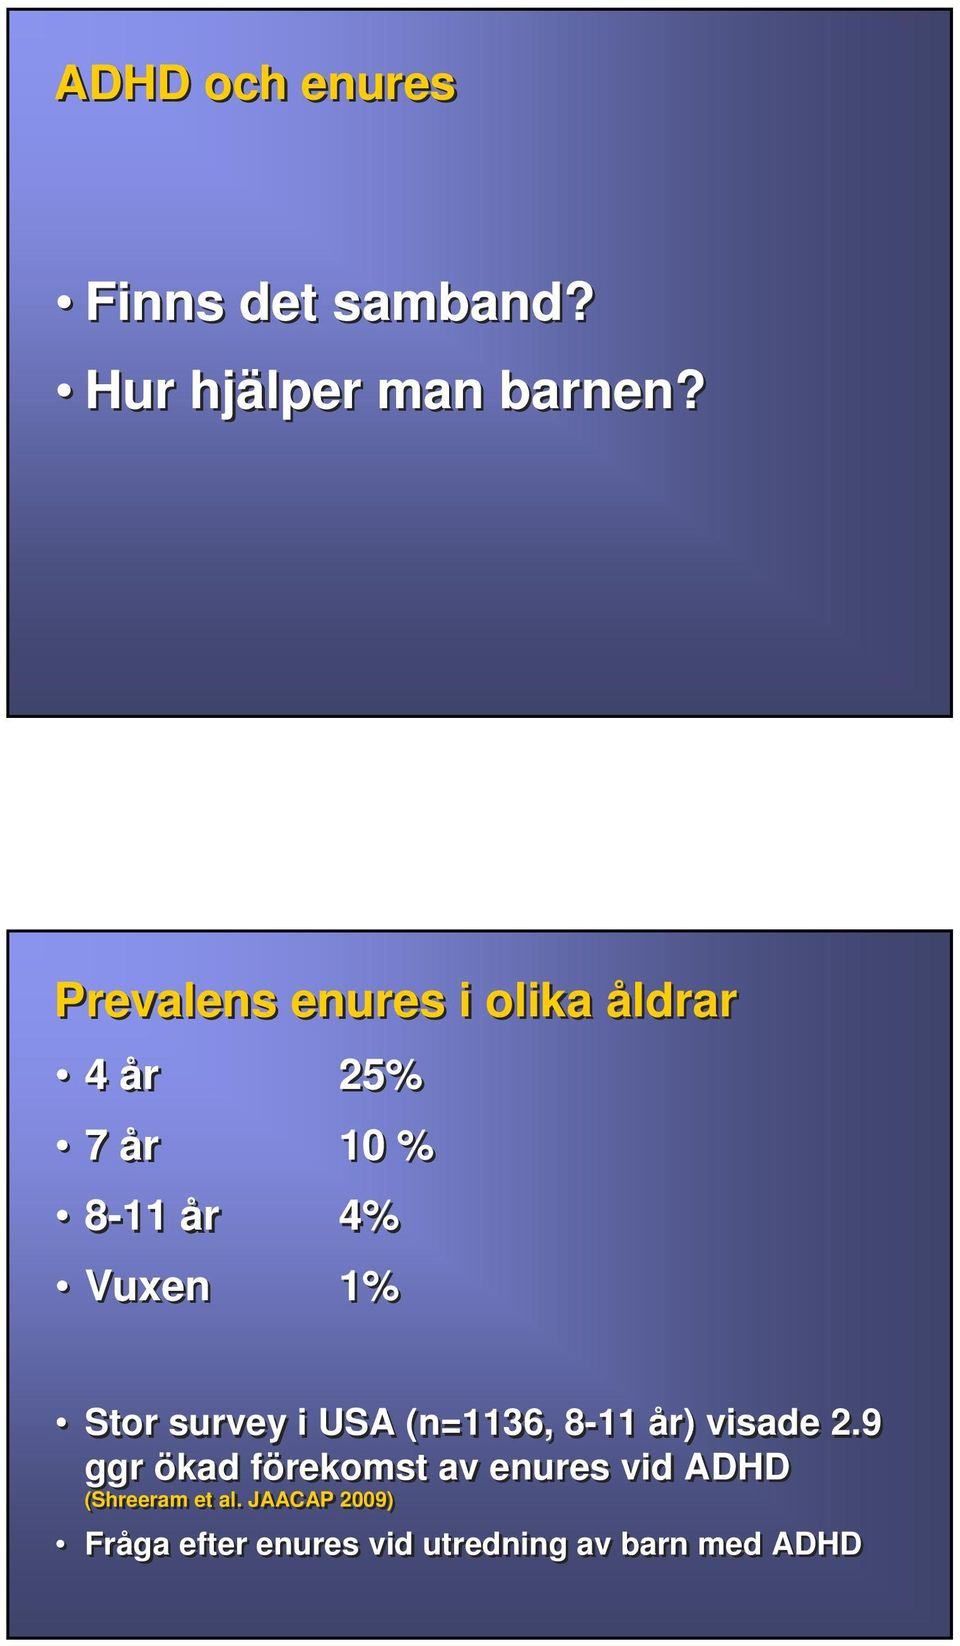 Stor survey i USA (n=1136, 8-11 år) visade 2.